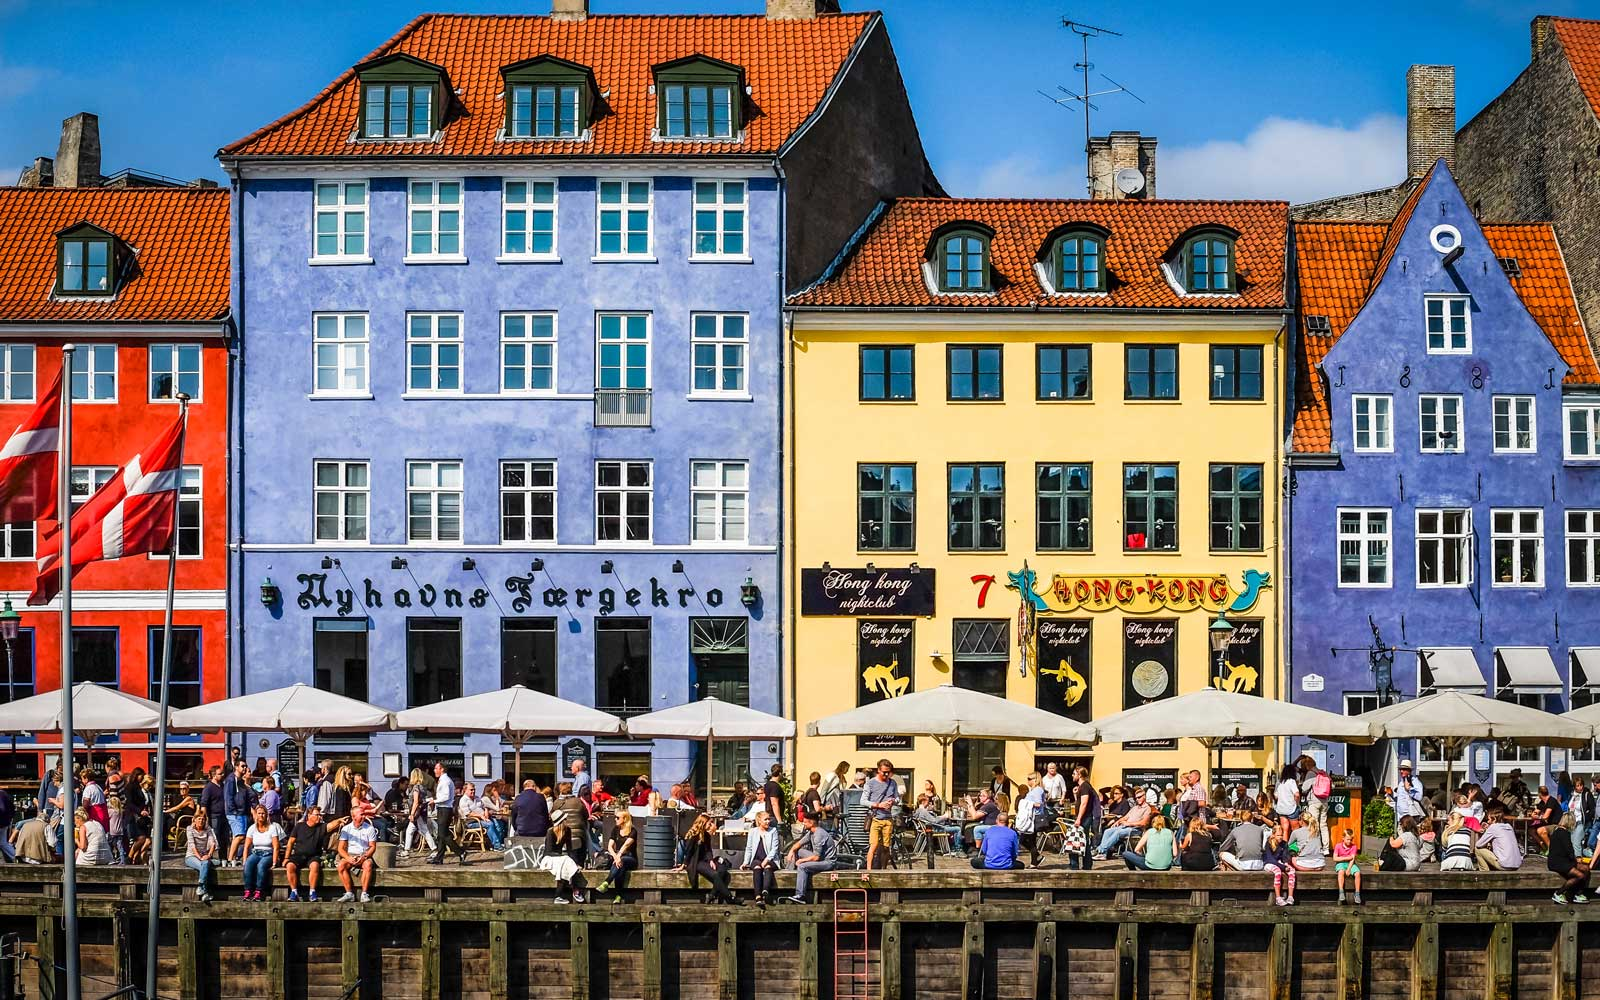 Fly to stops like Copenhagen, Denmark, staring at $159.99 one-way.